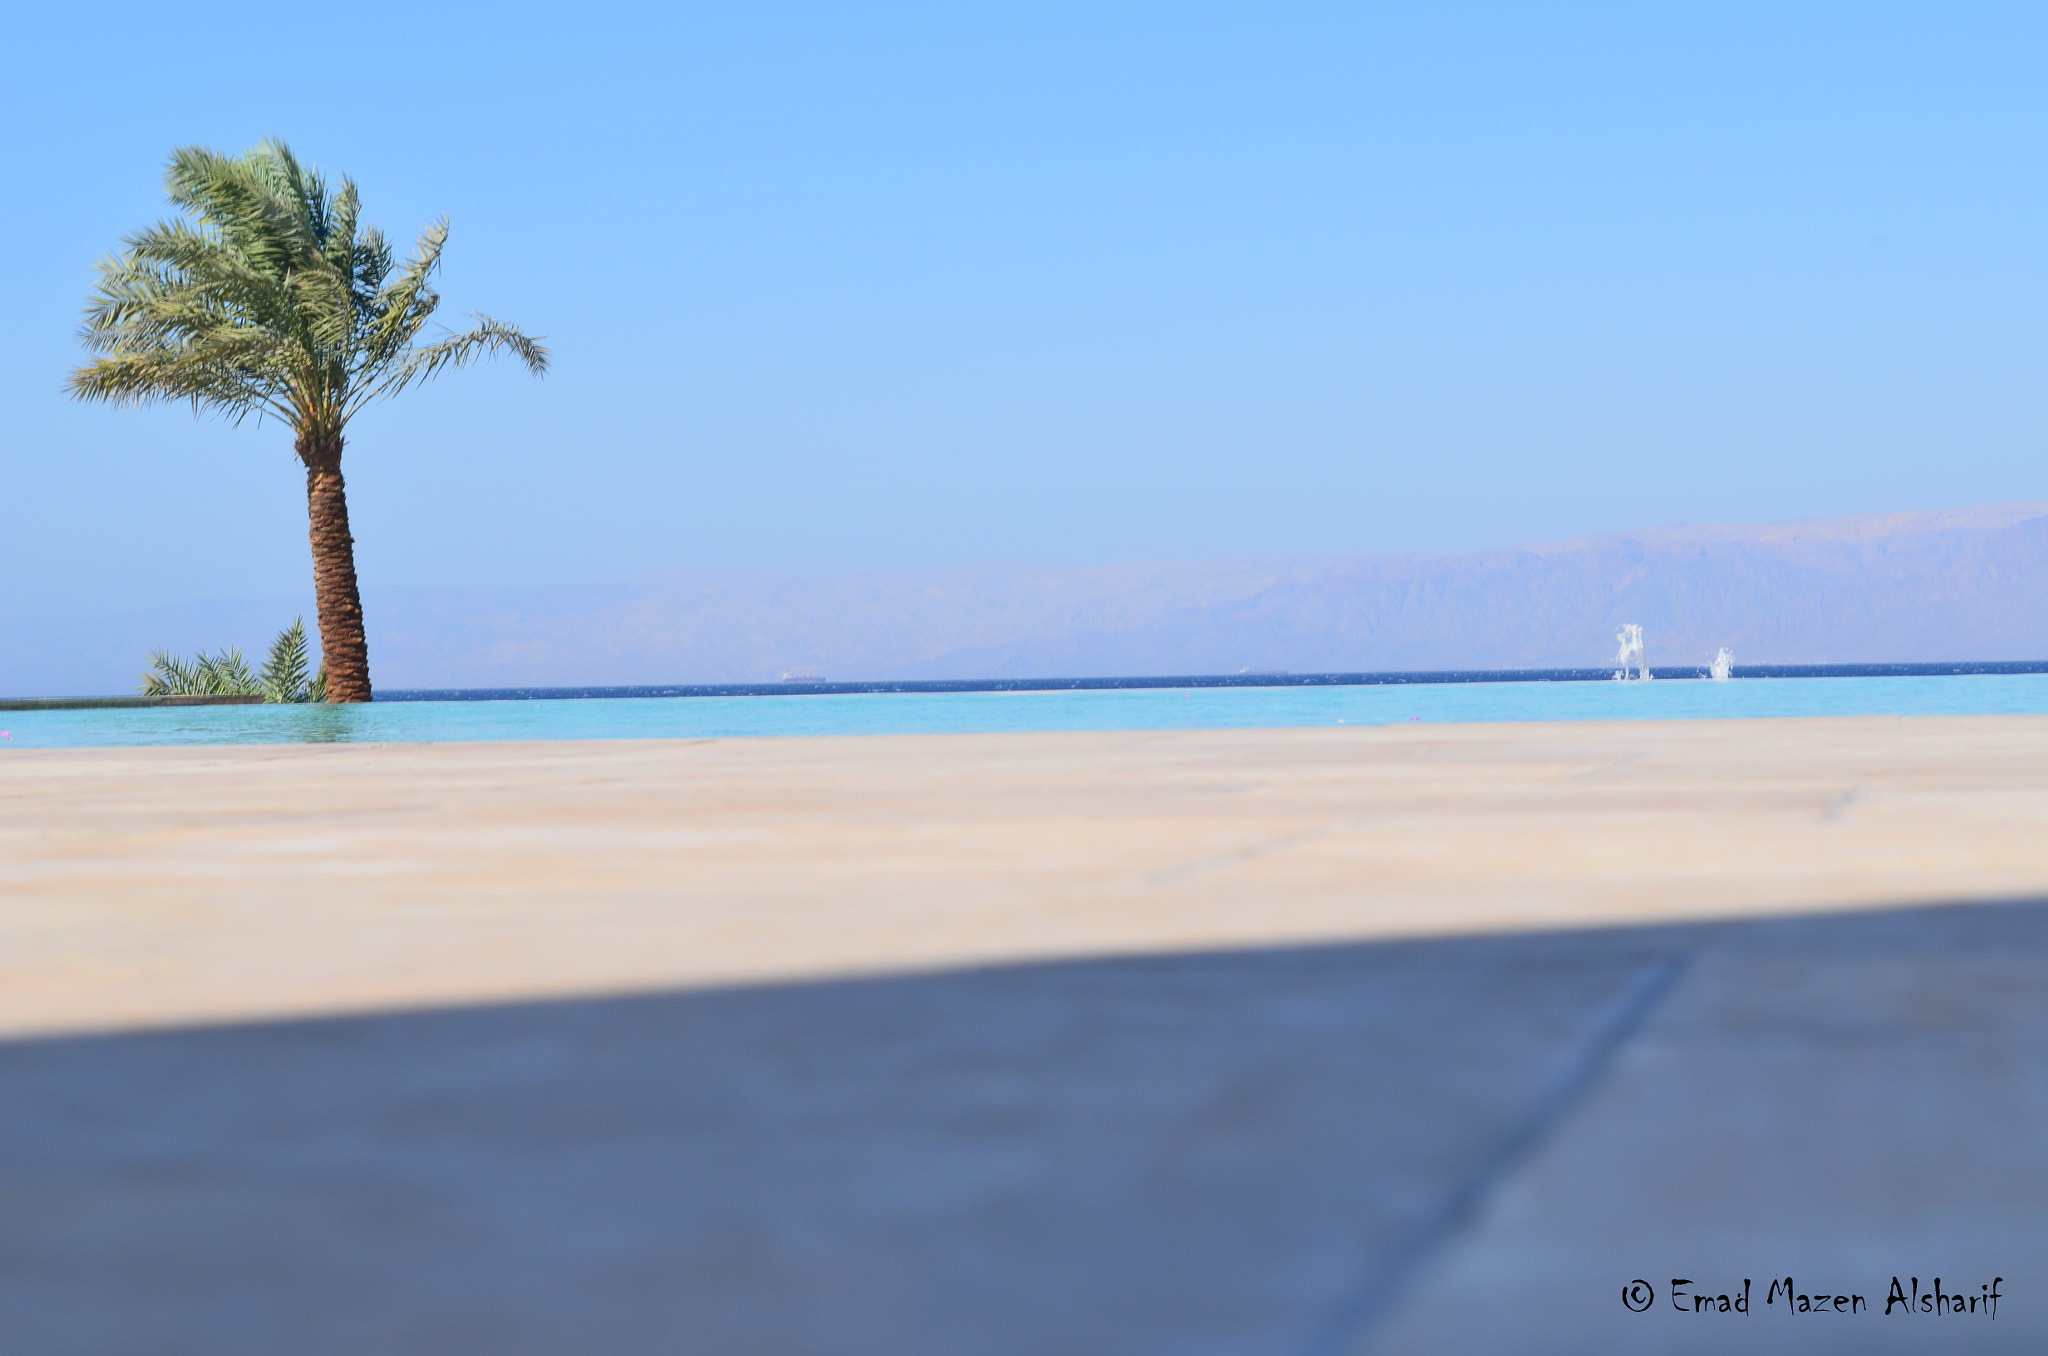 Photograph Let's Enjoy Summer by Emad Alsharif on 500px